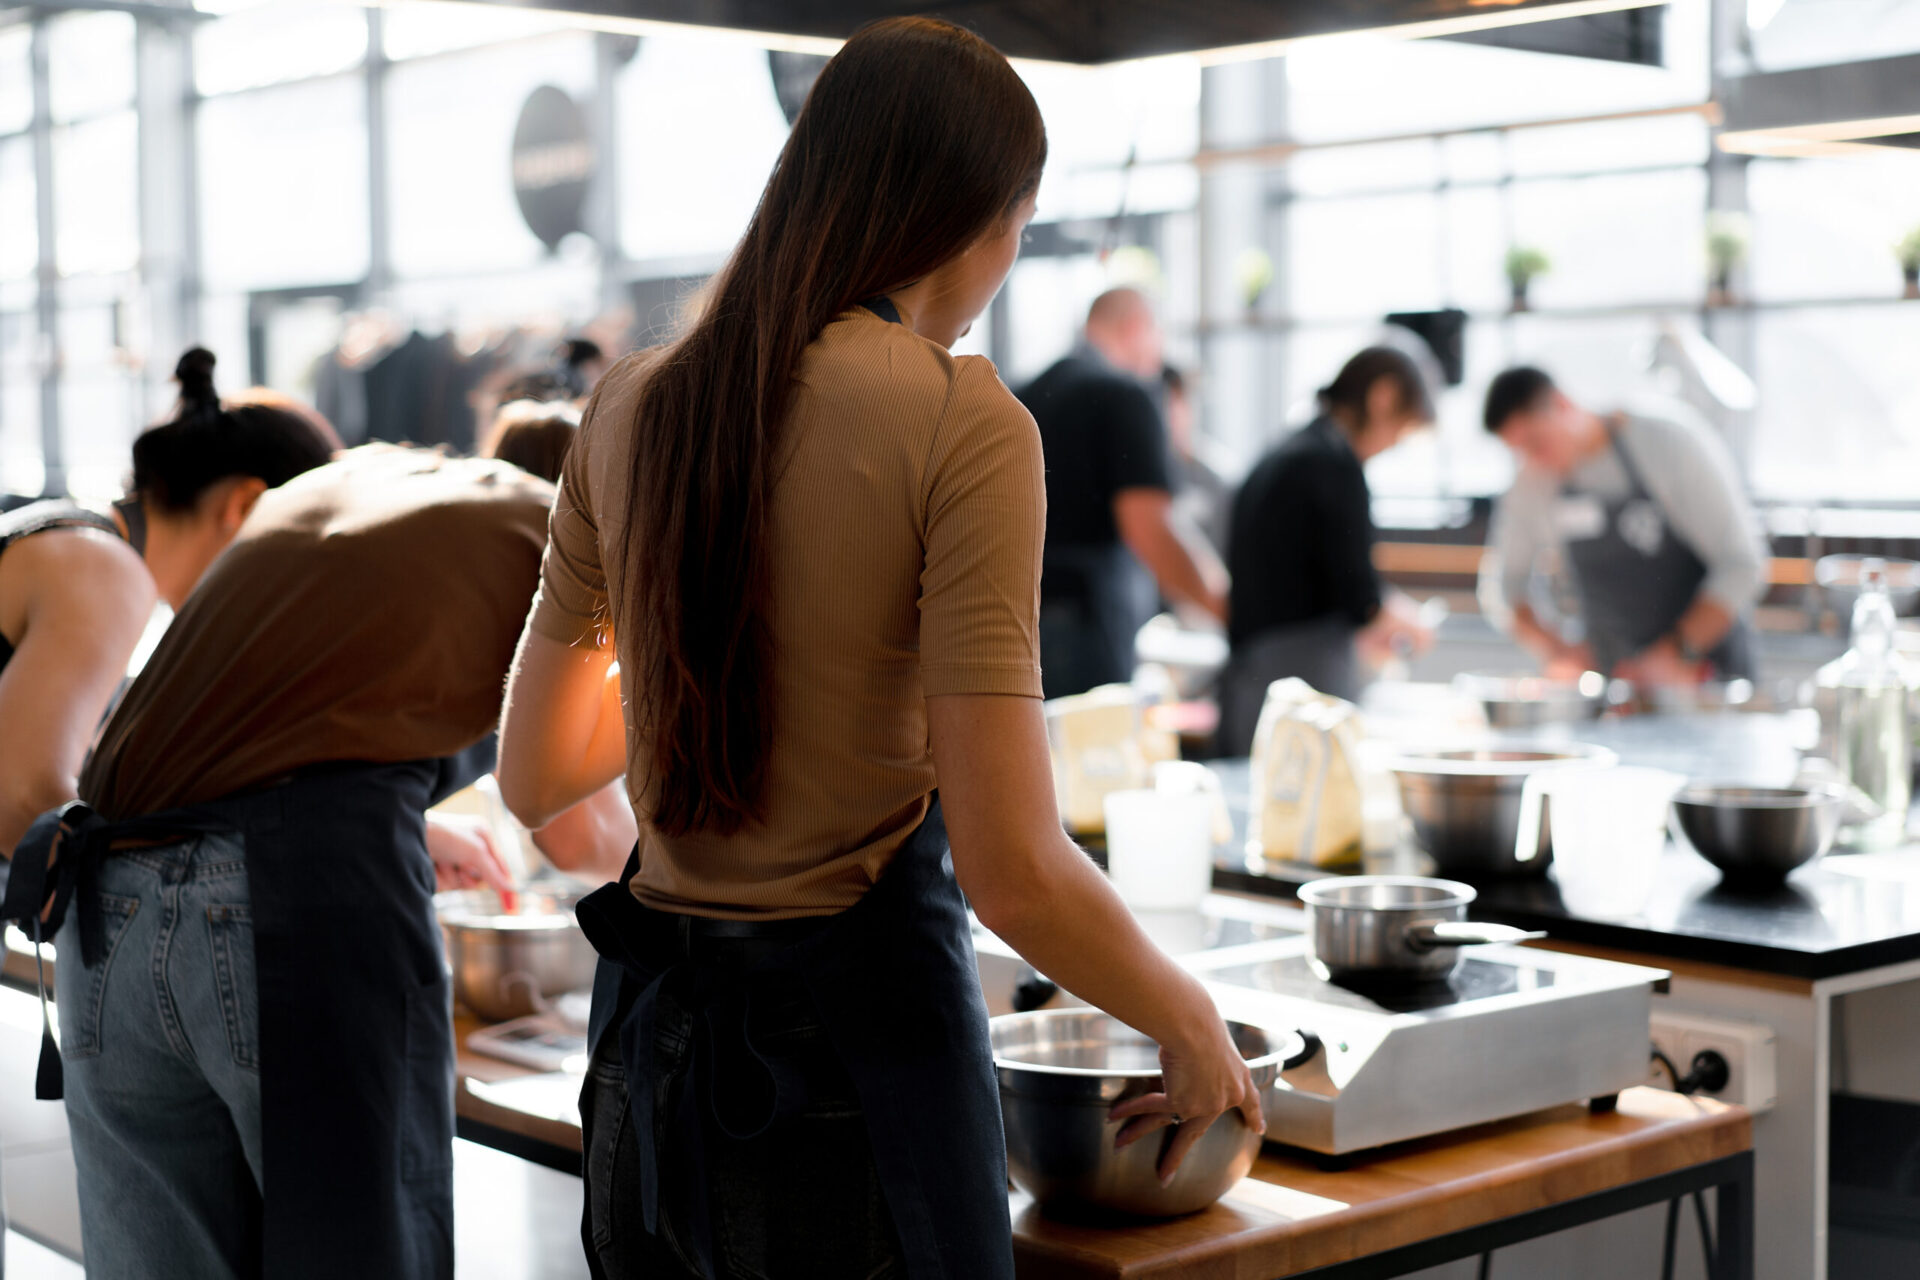 FSHT Program, Food Services and Hospitality, Food Services and Hospitality Training